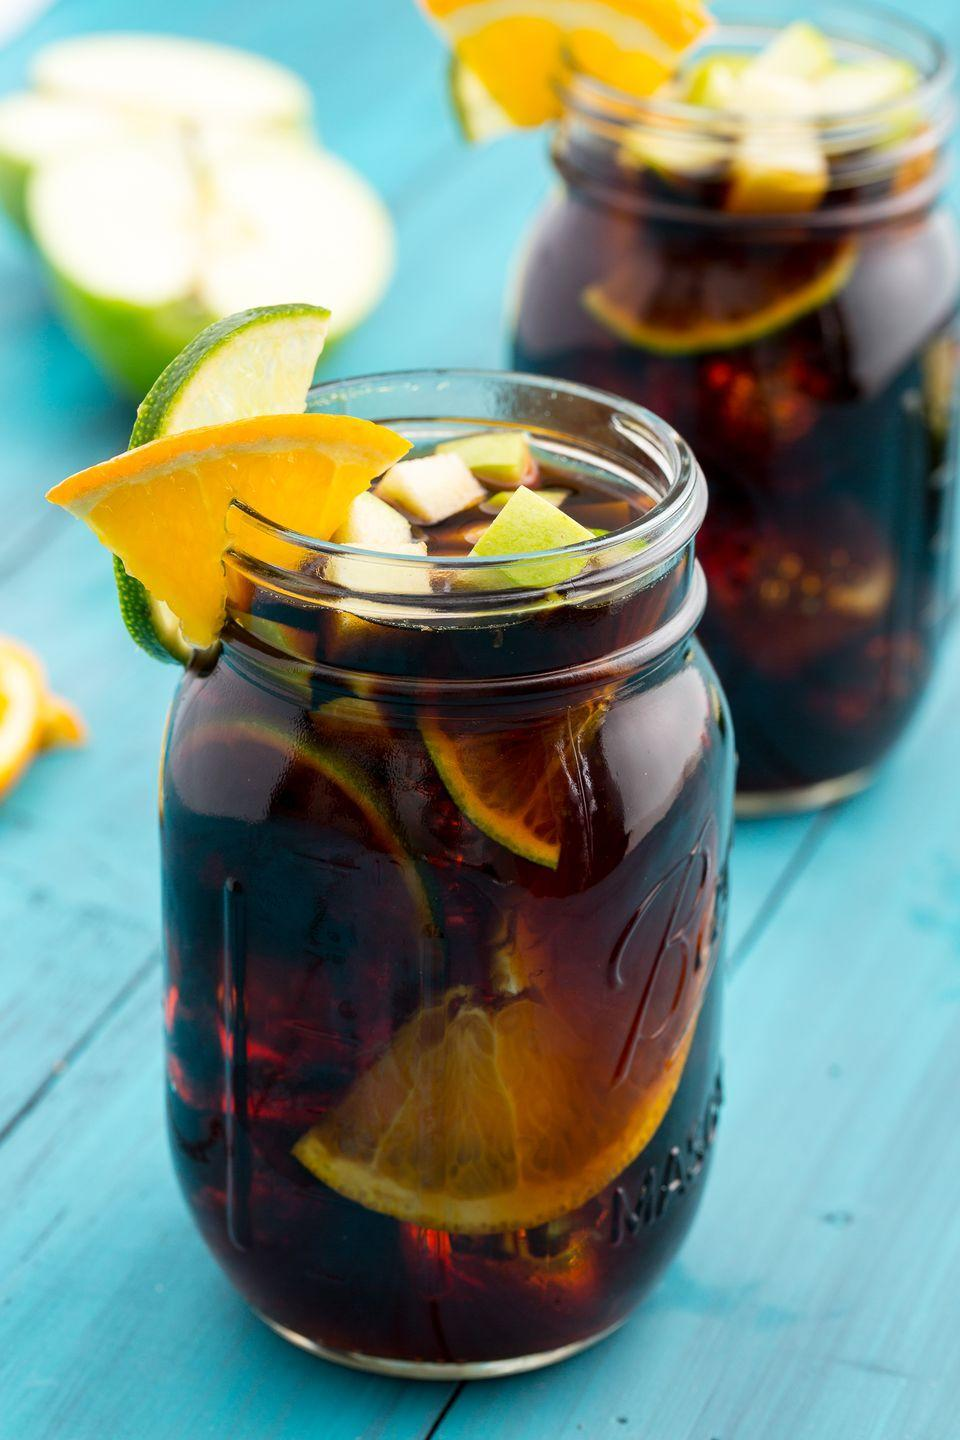 """<p>Drink this coffee black—the fruit, Cointreau and simple syrup sweeten things up, so you don't even miss milk or cream.</p><p>Get the recipe from <a href=""""https://www.delish.com/cooking/recipes/a47528/cold-brew-sangria-recipe/"""" rel=""""nofollow noopener"""" target=""""_blank"""" data-ylk=""""slk:Delish"""" class=""""link rapid-noclick-resp"""">Delish</a>.</p>"""